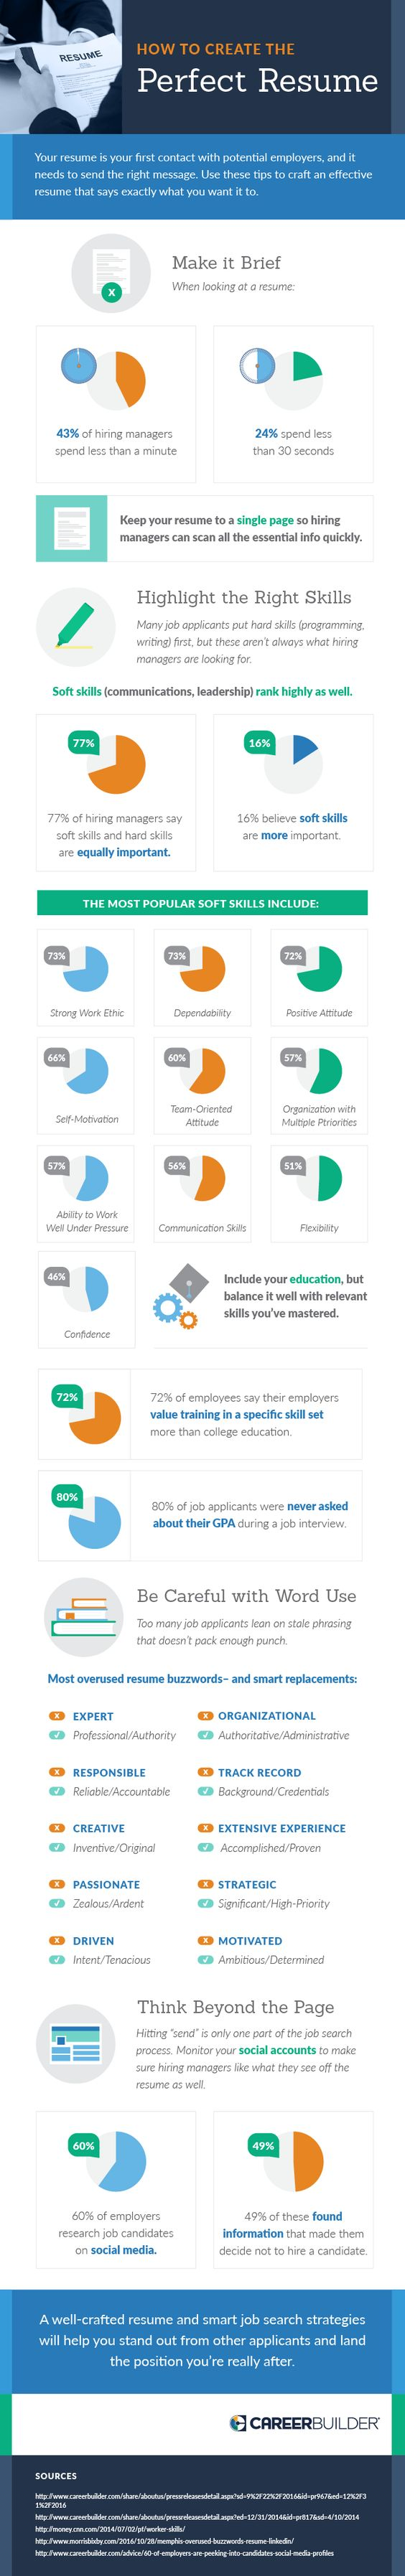 Career Builder Infographic And White Paper How To Create